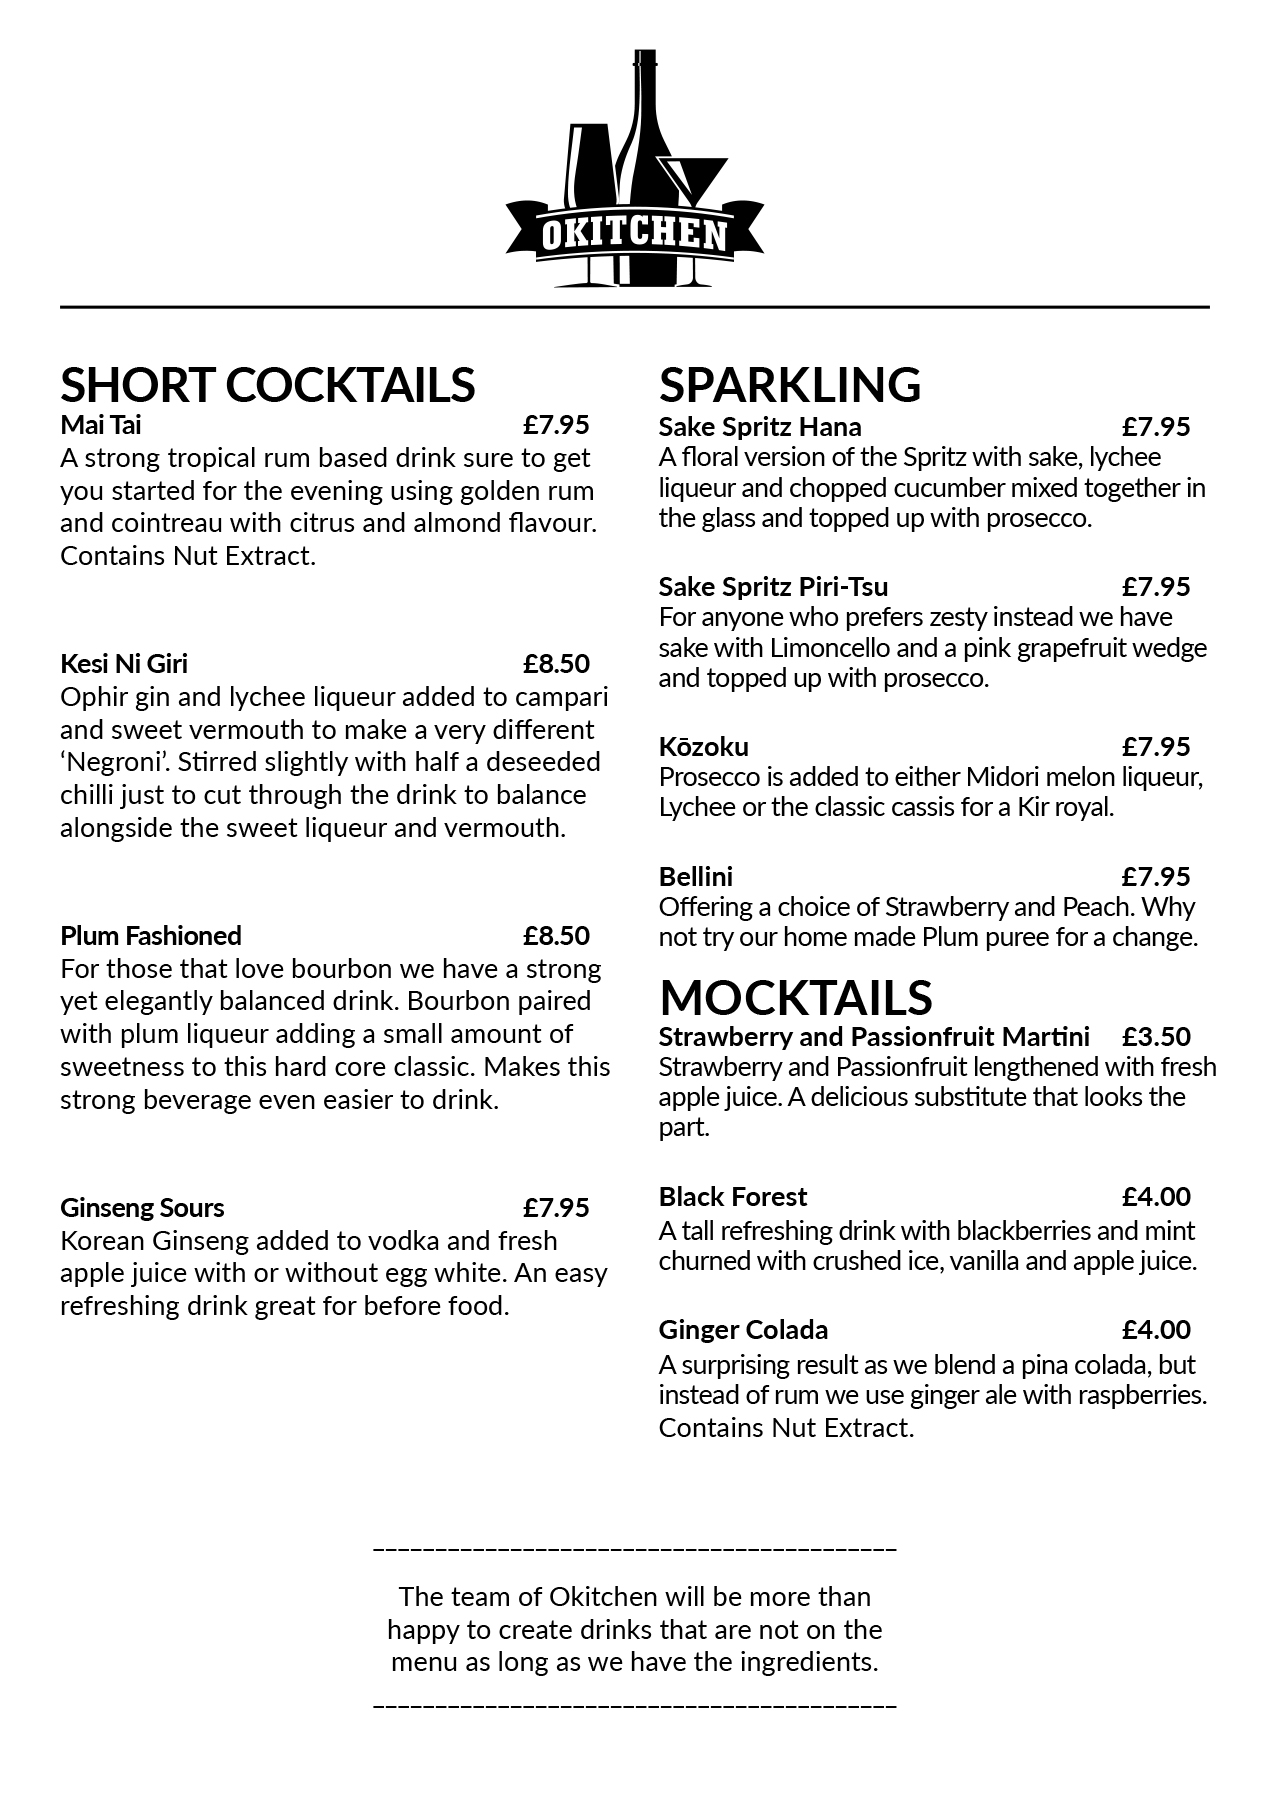 NEW OKITCHEN DRINKS MENU A5 4PAGE-3